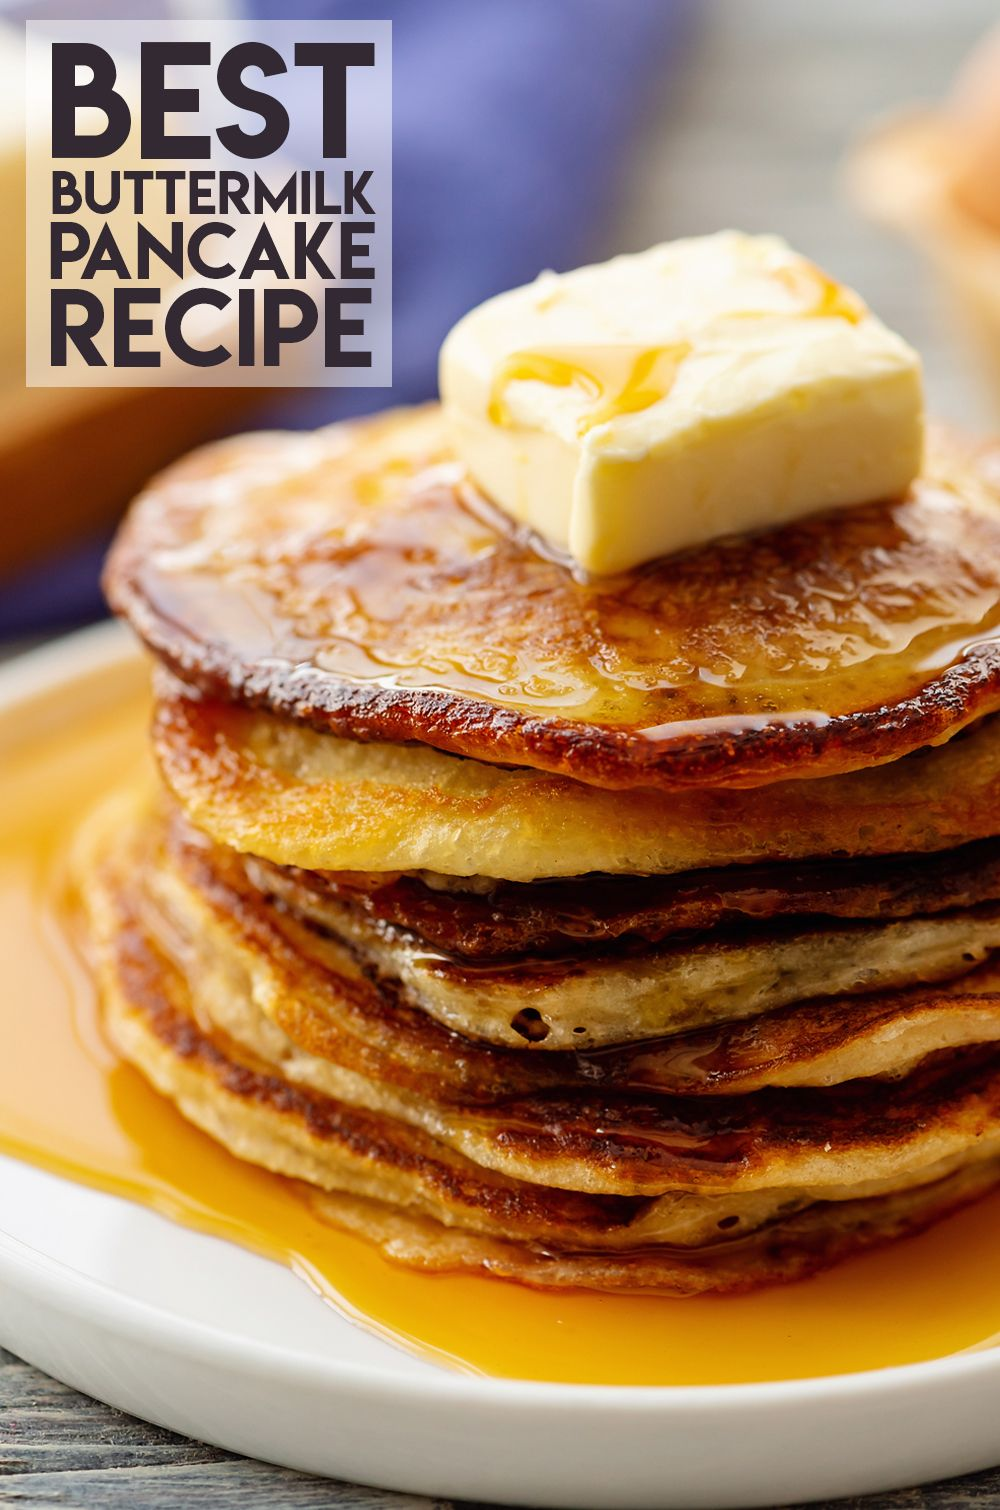 Best Buttermilk Pancake Recipe Is A Family Favorite That Is Always Requested For Brunch You Can E Pancake Recipe Buttermilk Buttermilk Pancakes Pancake Recipe